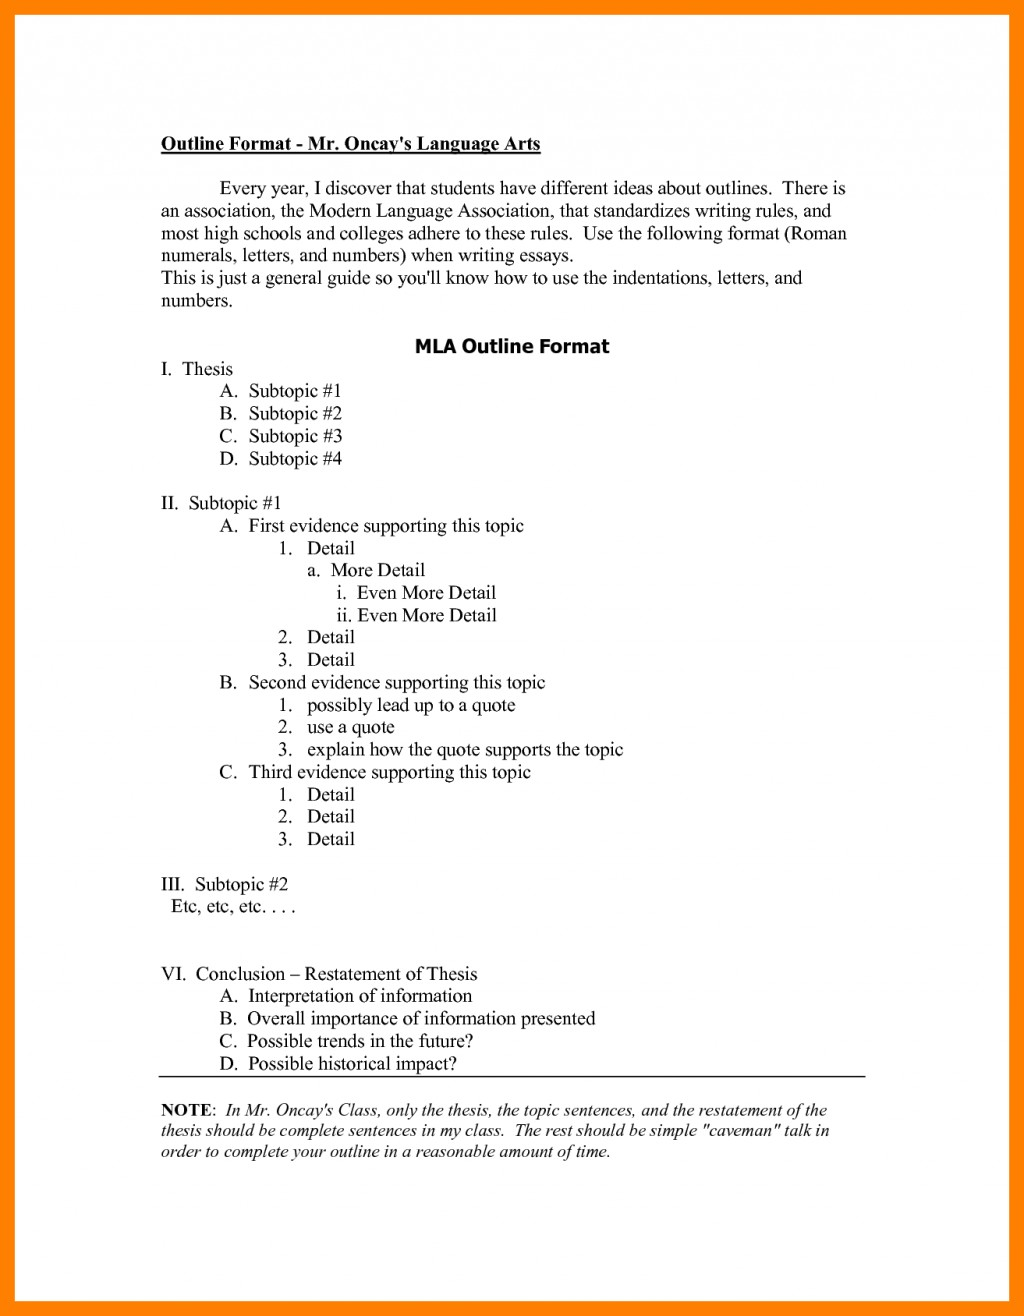 020 20research Paper Samples Mla Citation Generator Outline Daly Note Card Template Internal Citations Blank20 1024x1316 Research Format Cover Singular Page Style Title Example With Large